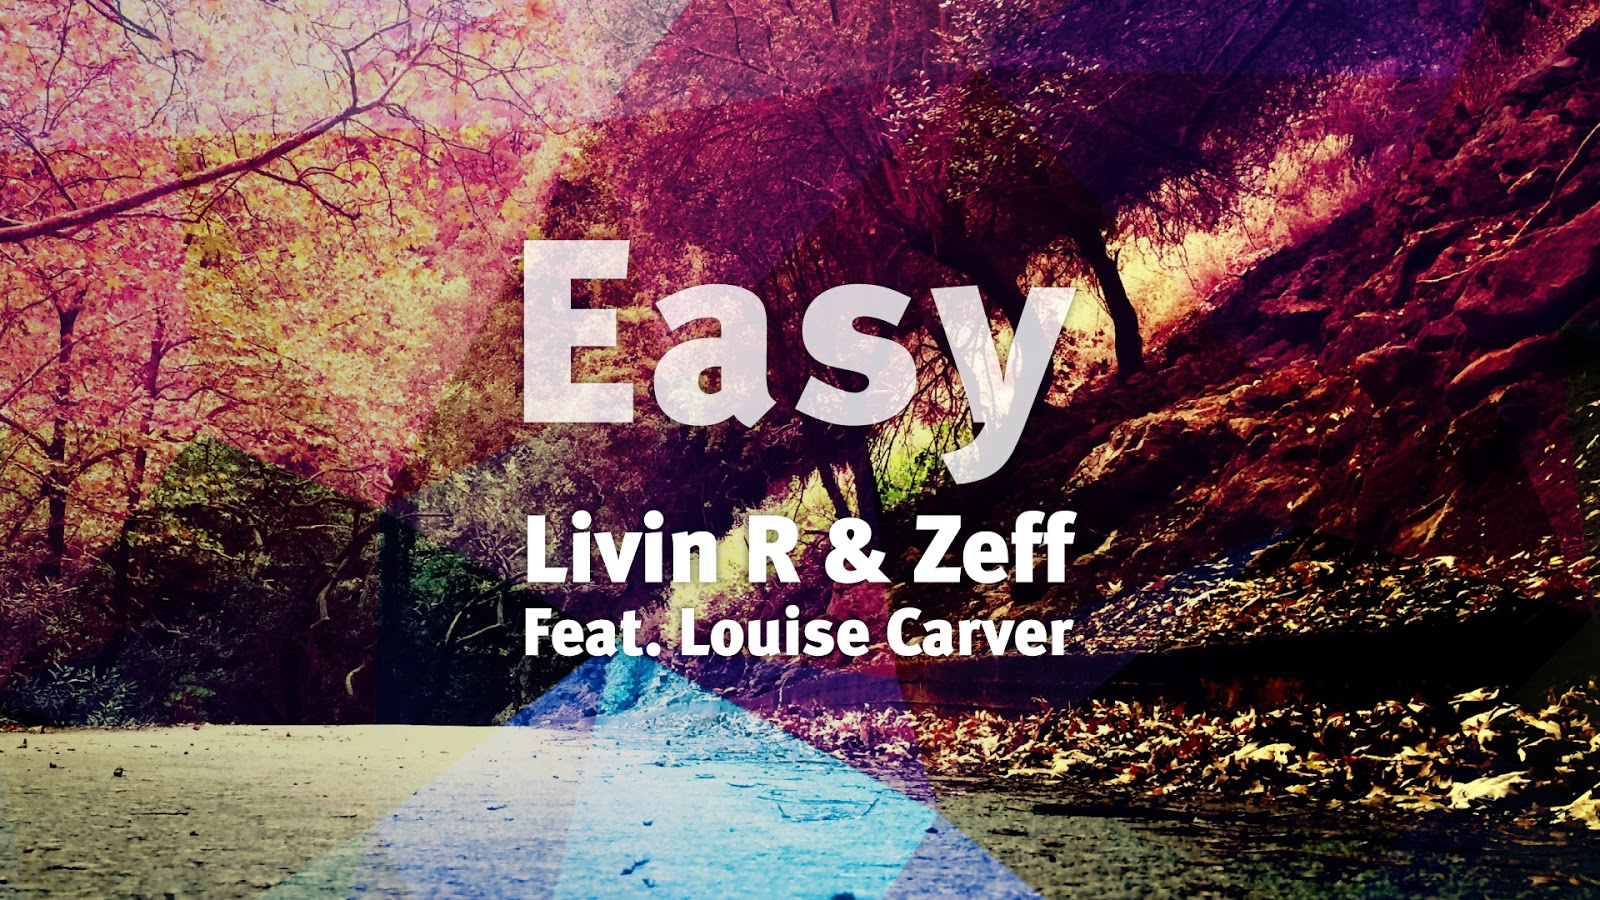 Livin R & Zeff feat. Louise Carver – Easy (One & One Remix)